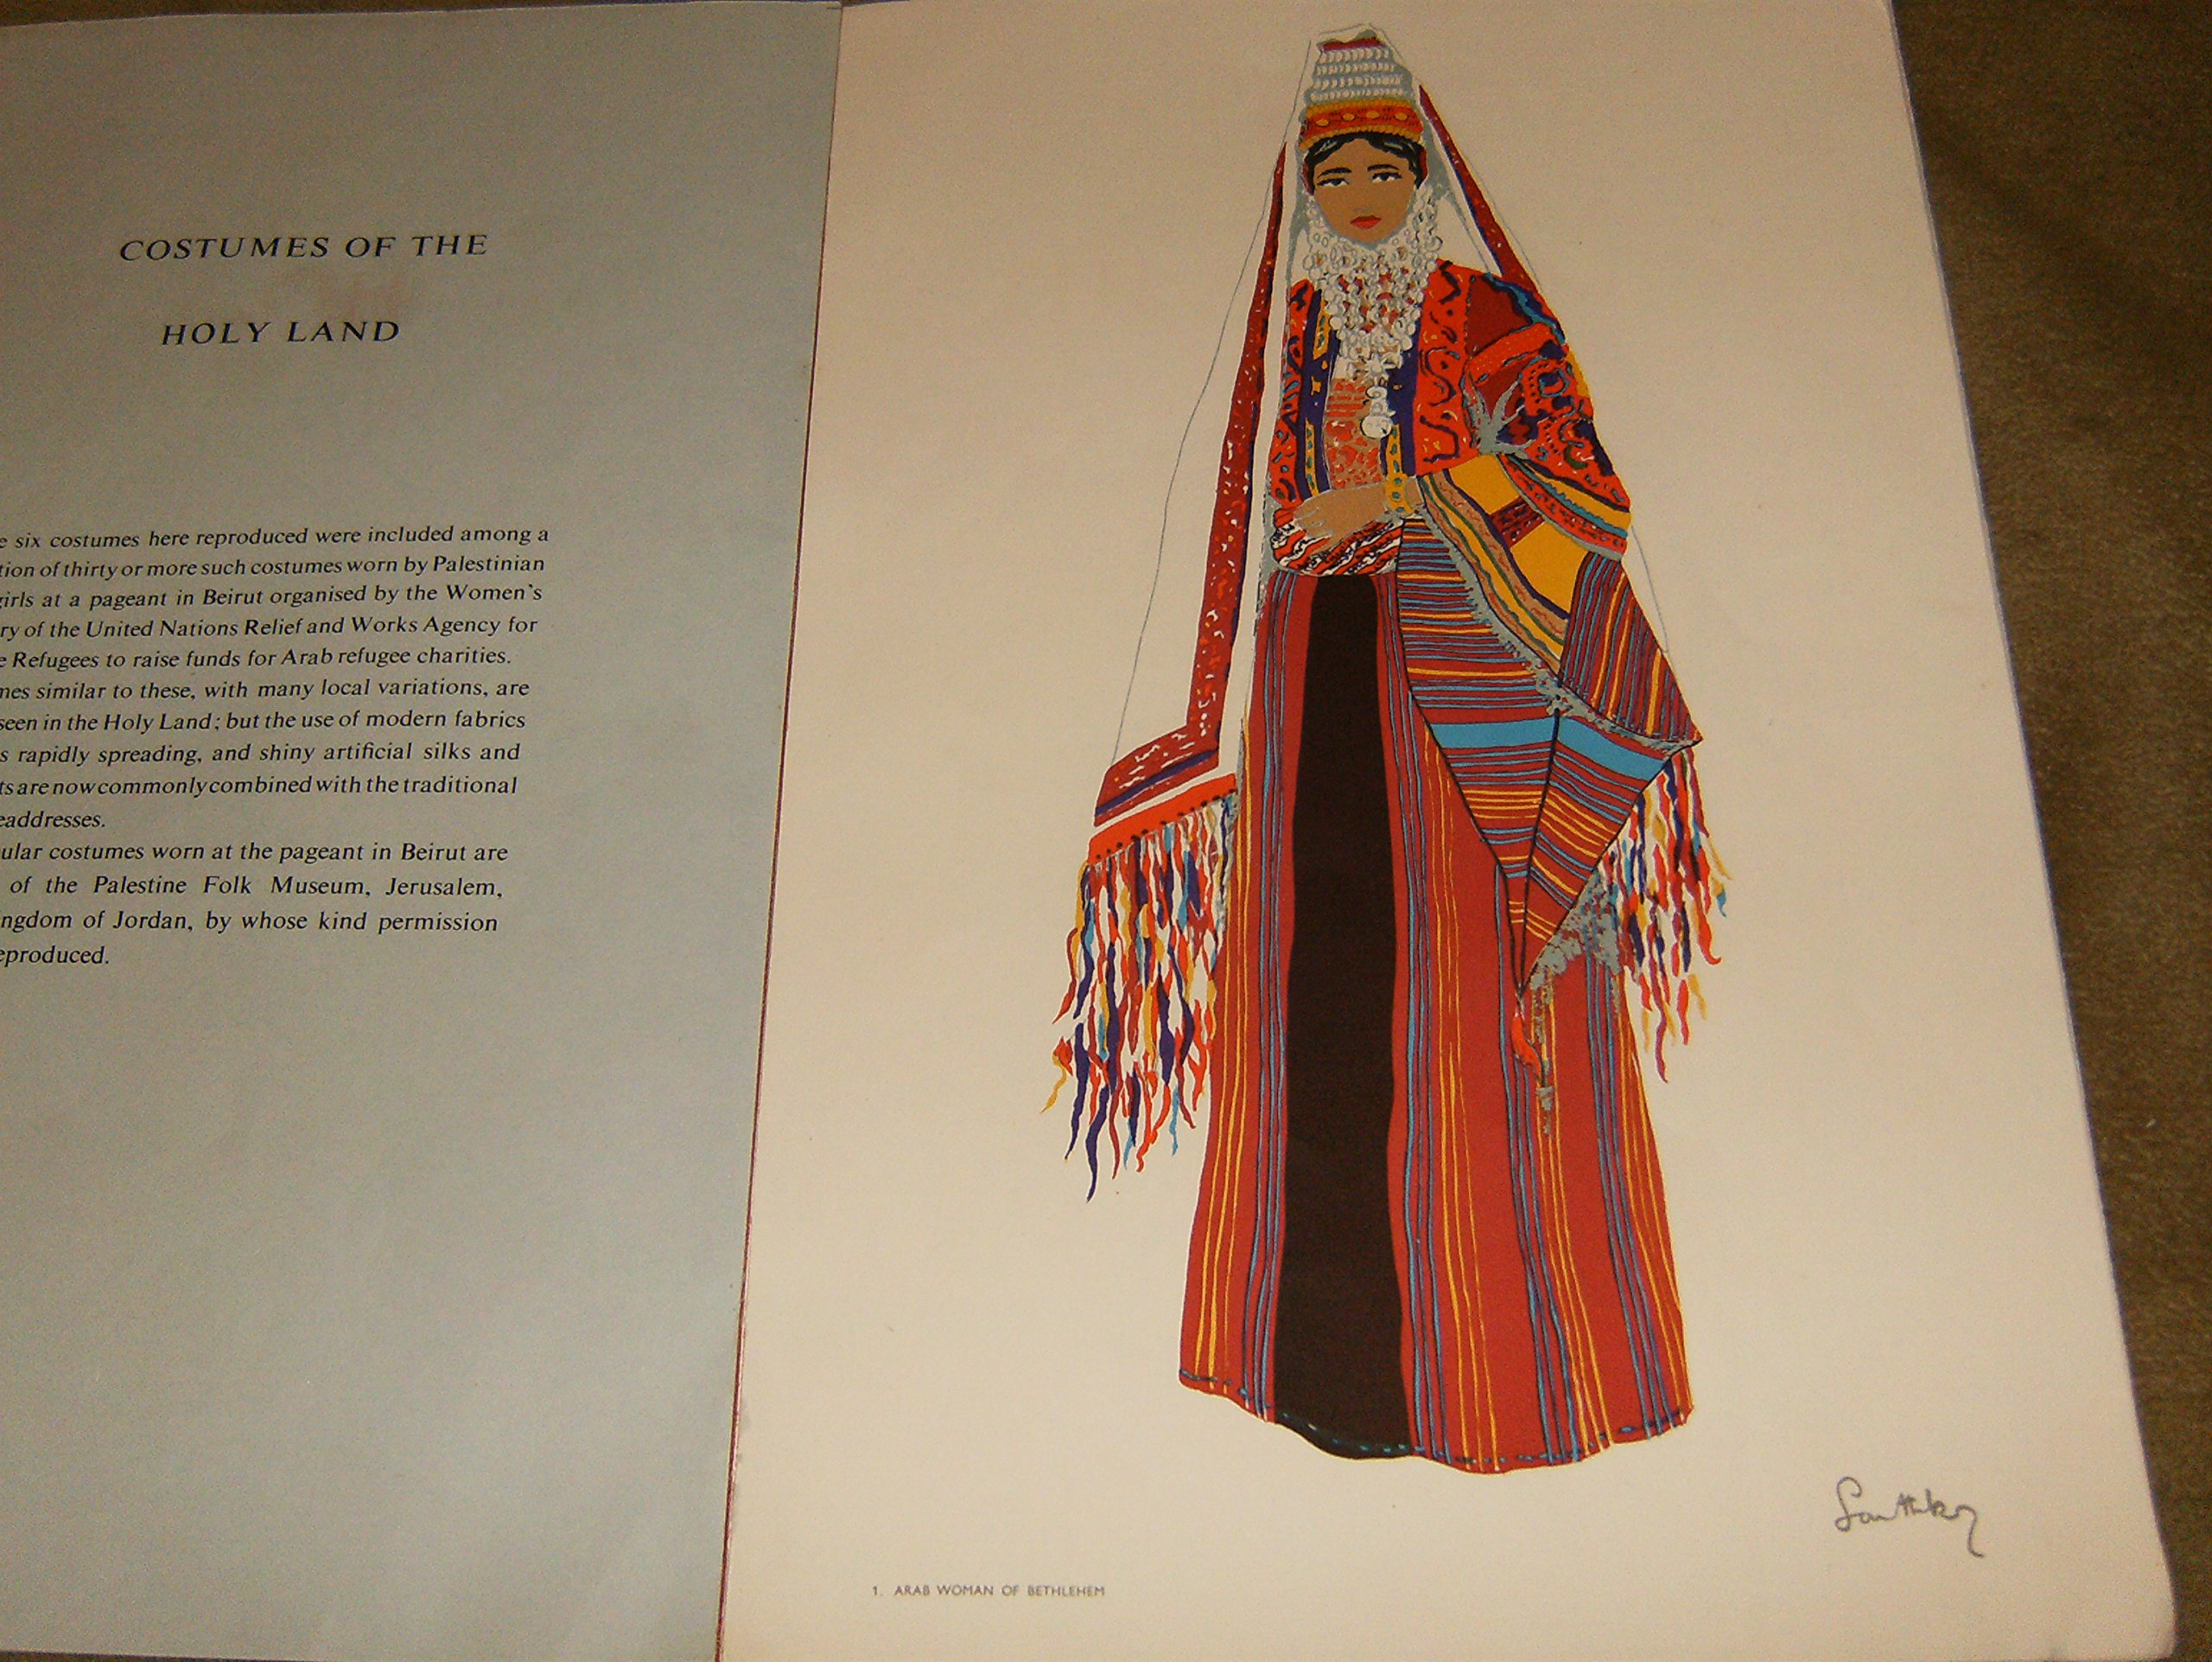 Artis Design Arad : Costumes of the holy land: amazon.co.uk: susan southby: books